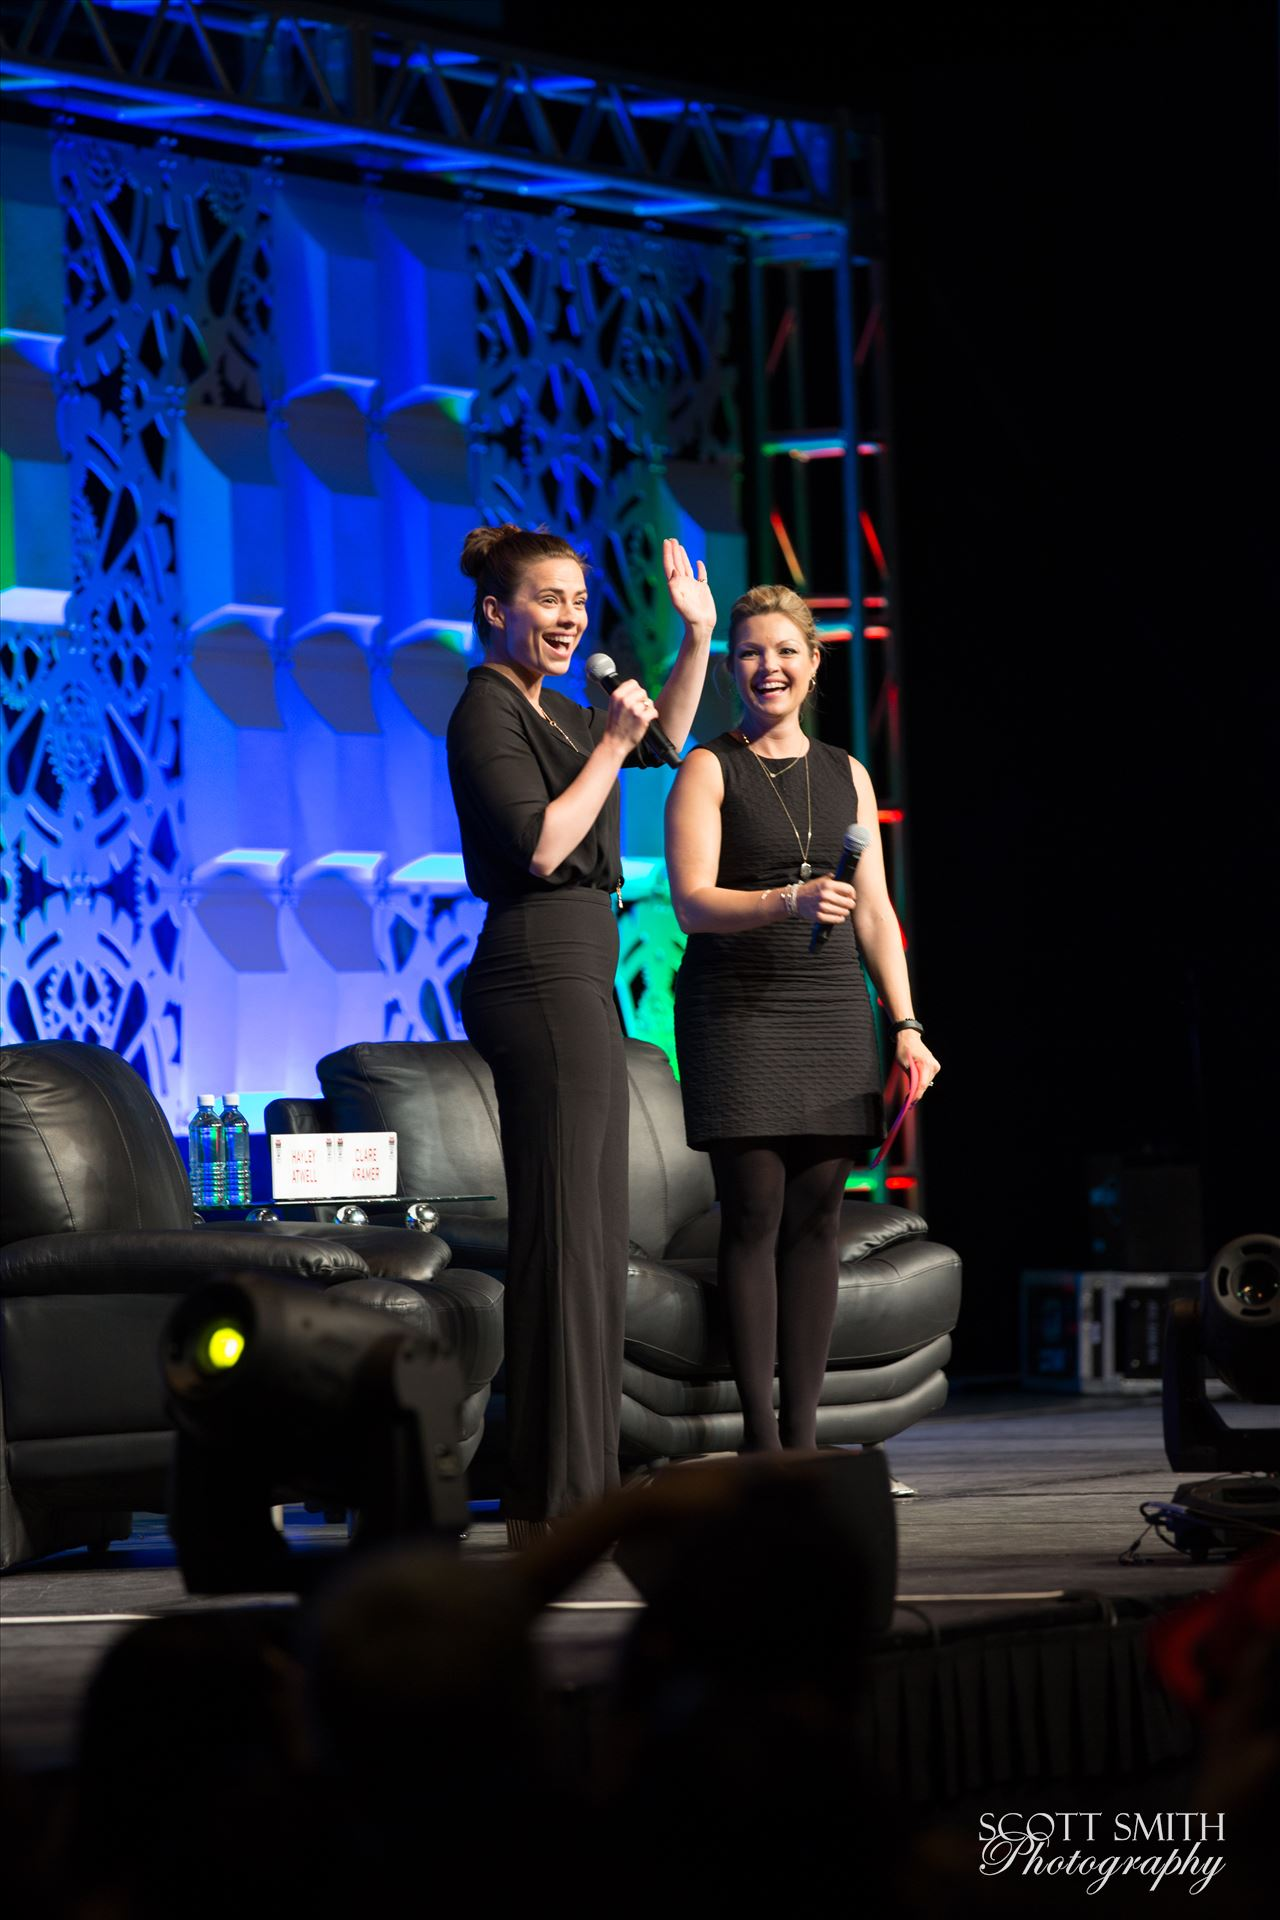 Denver Comic Con 2016 18 - Denver Comic Con 2016 at the Colorado Convention Center. Clare Kramer and Haley Atwell. by Scott Smith Photos